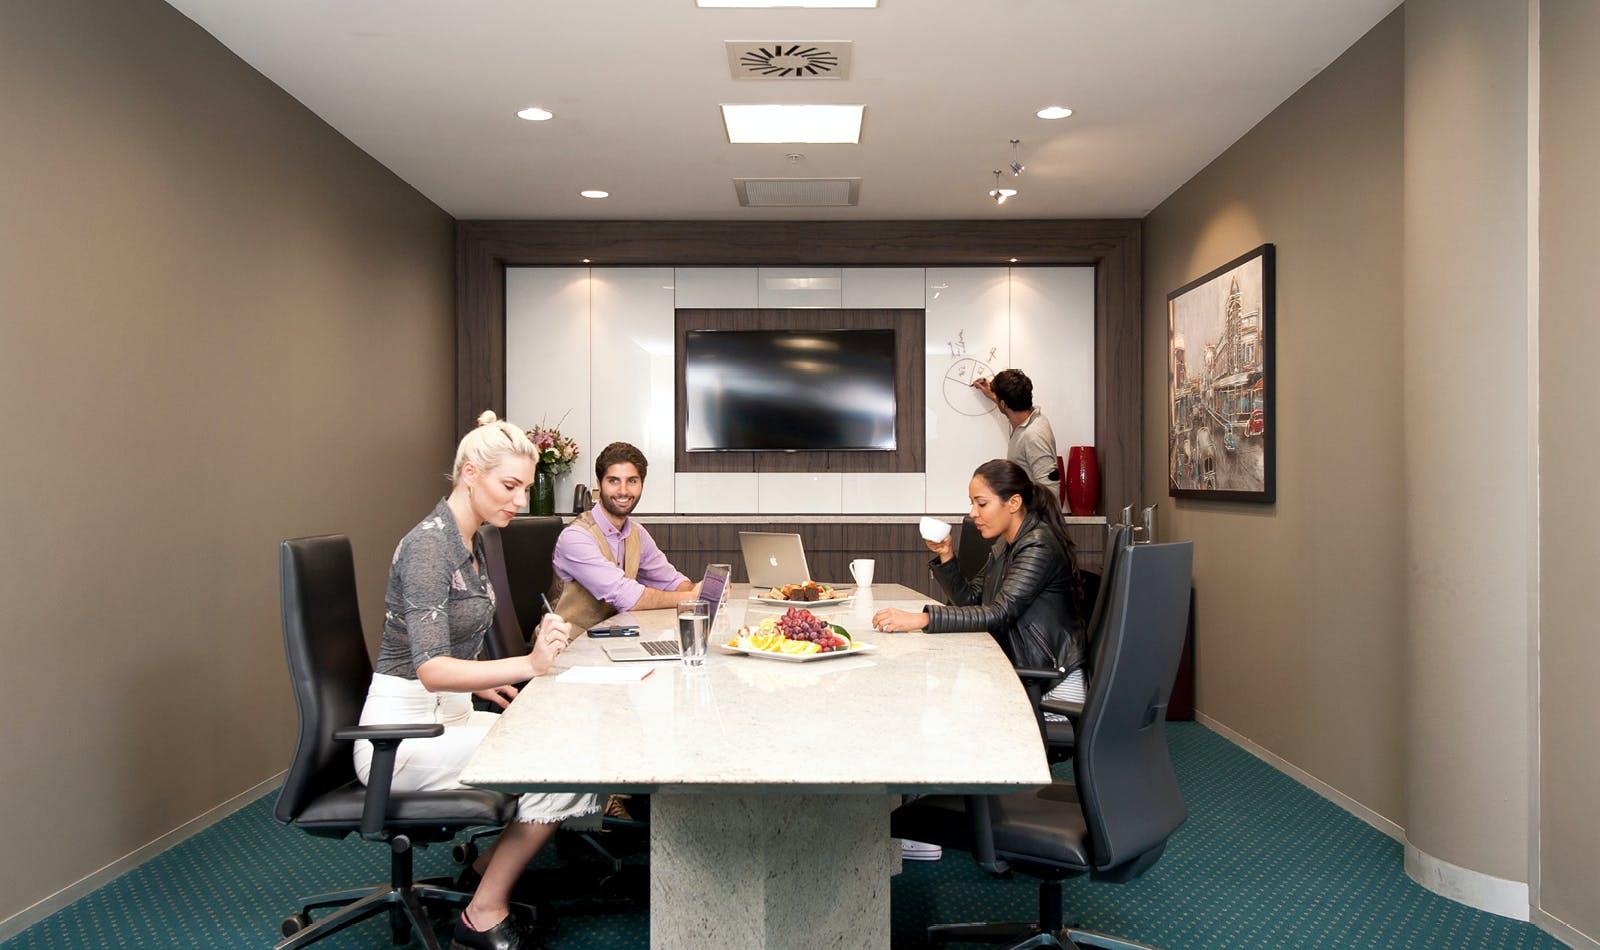 Premium Boardroom, meeting room at Deloitte Building, image 1